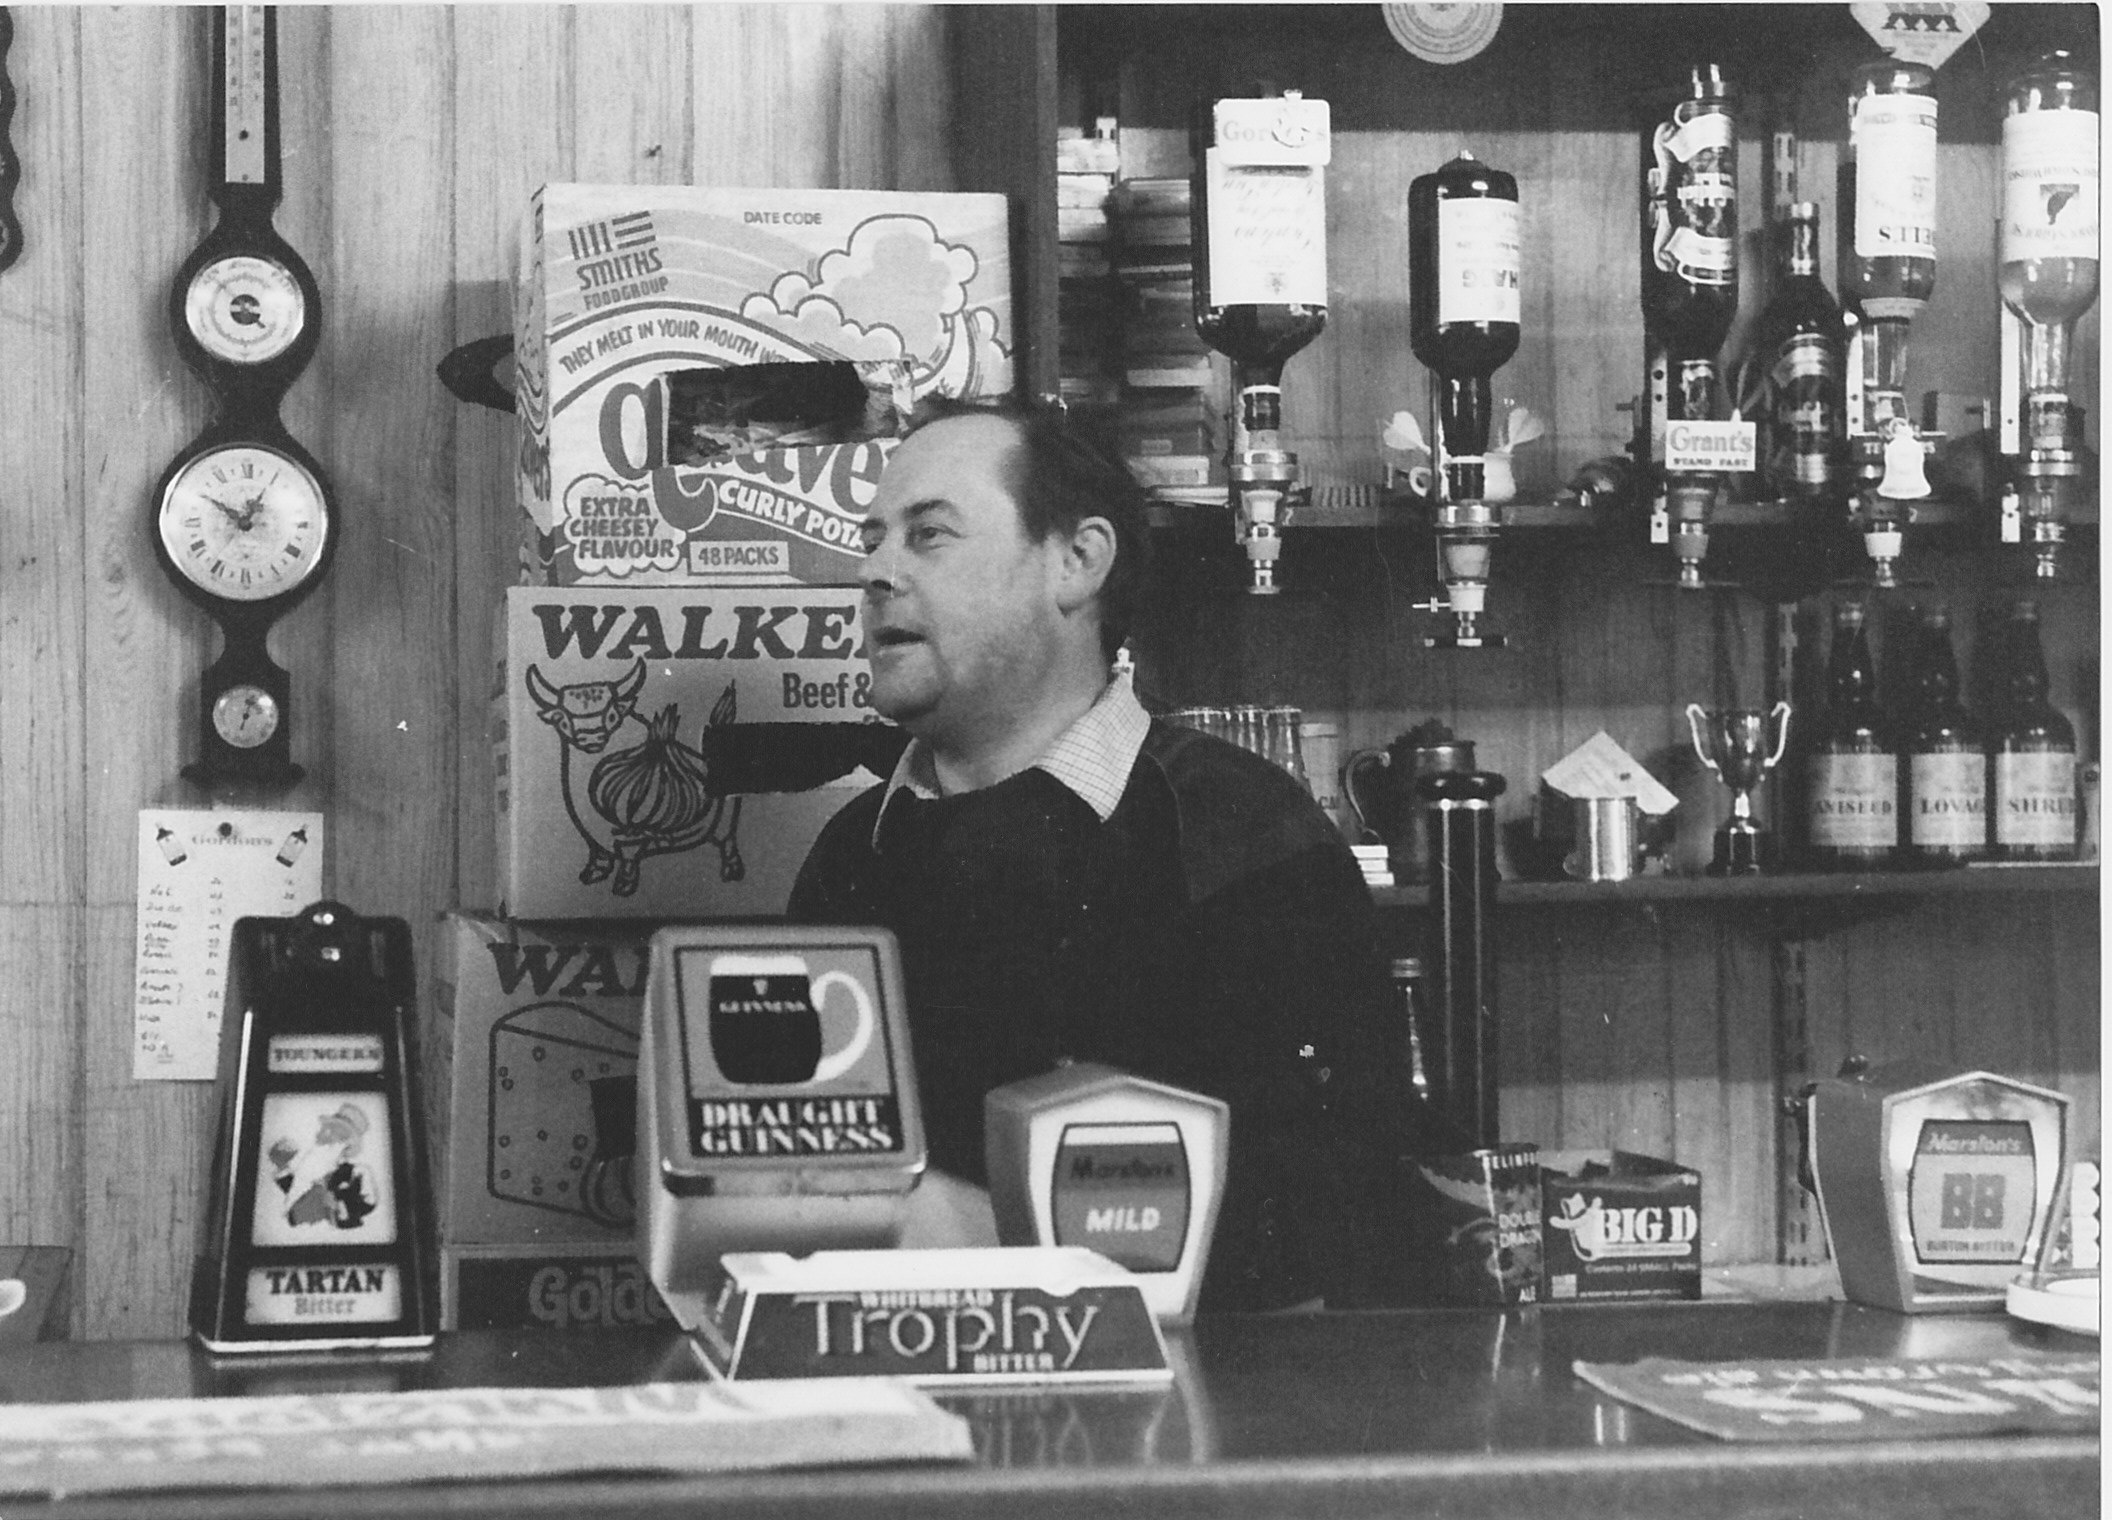 Mike Evans landlord of the White Hart